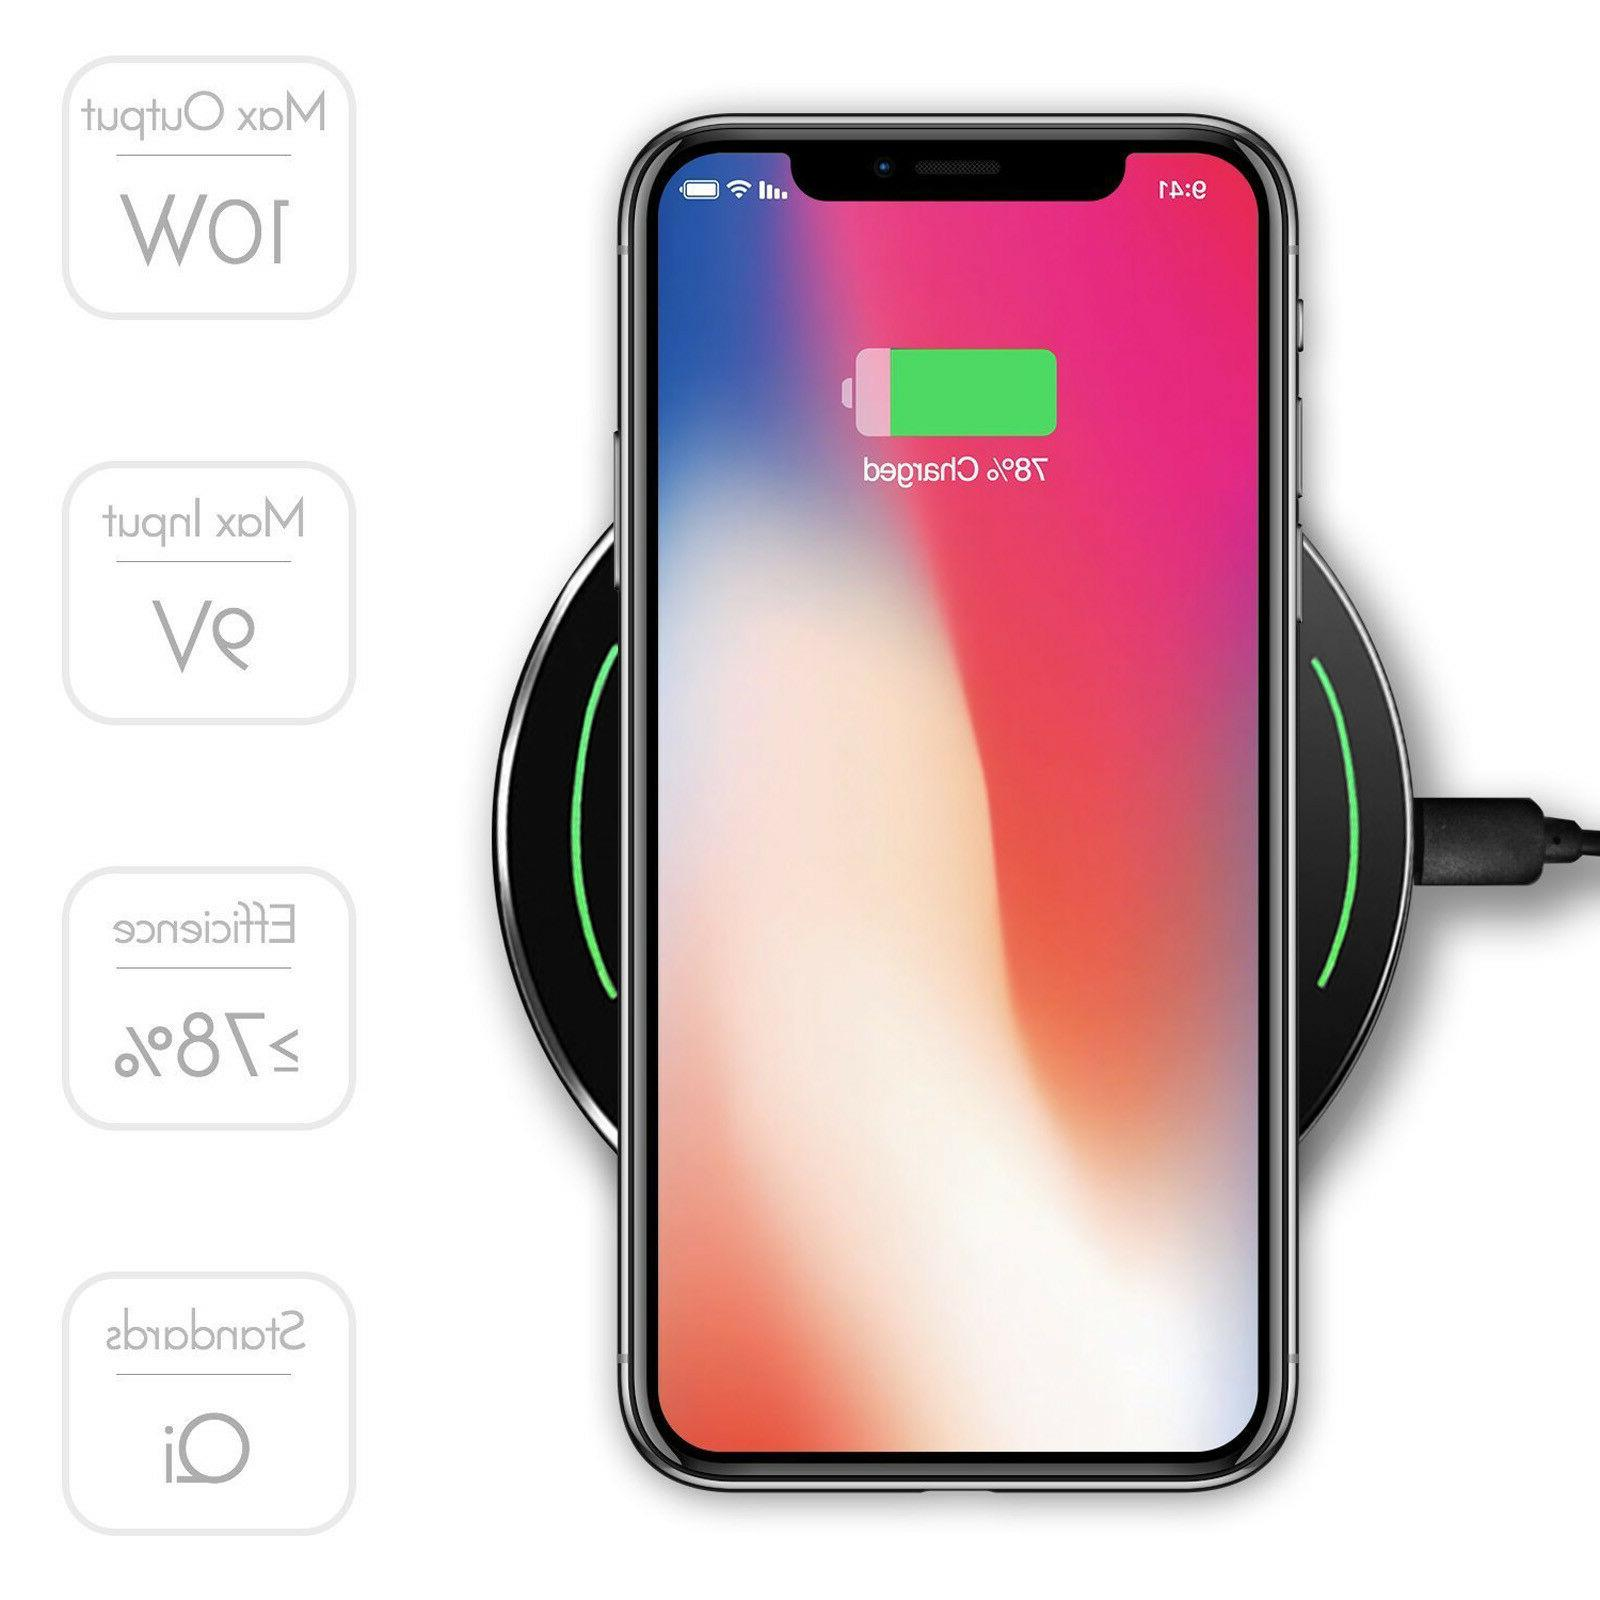 Wireless Charger, Portable Ultra Slim 9W Fast Qi-Certified C